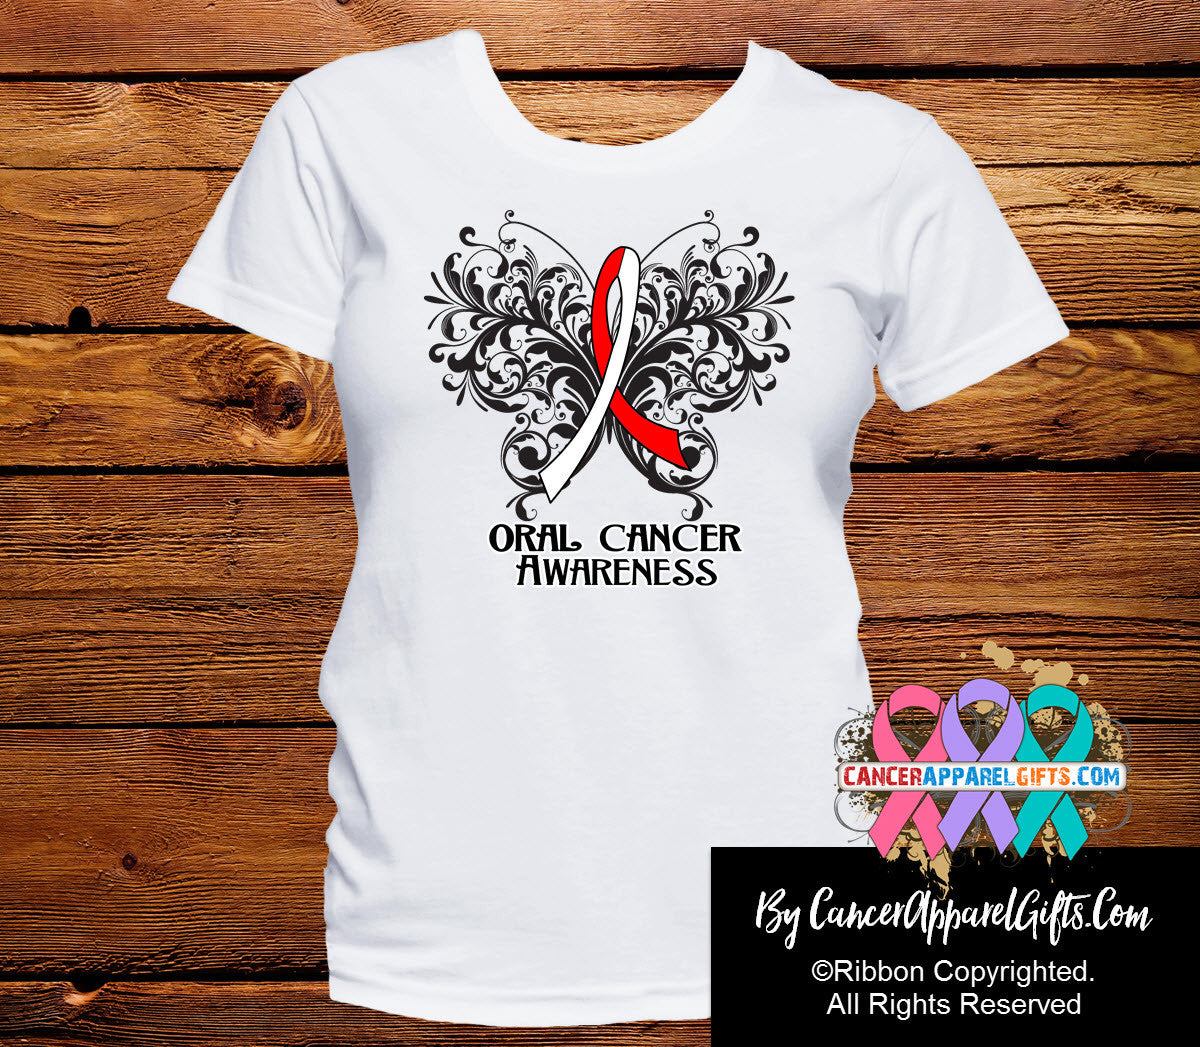 Oral Cancer Butterfly Ribbon Shirts - Cancer Apparel and Gifts